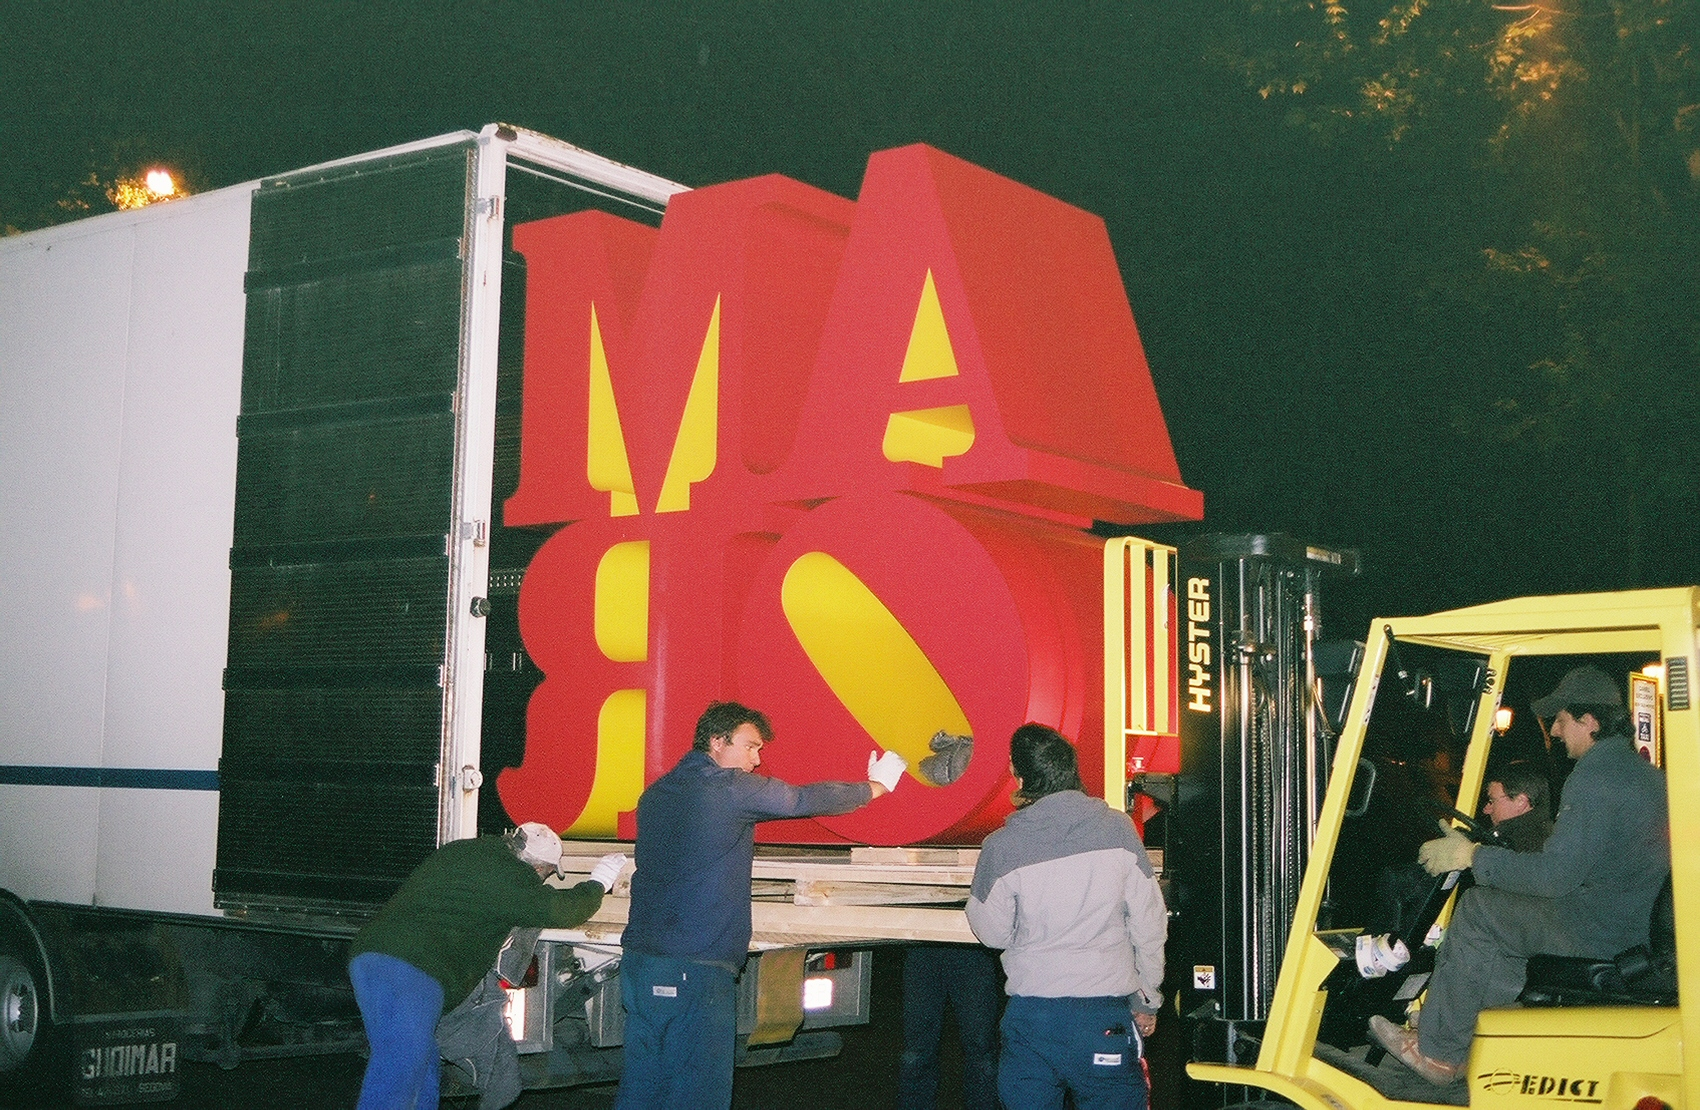 In Madrid, installing Robert Indiana's AMOR sculpture with help from our partners in Spain.